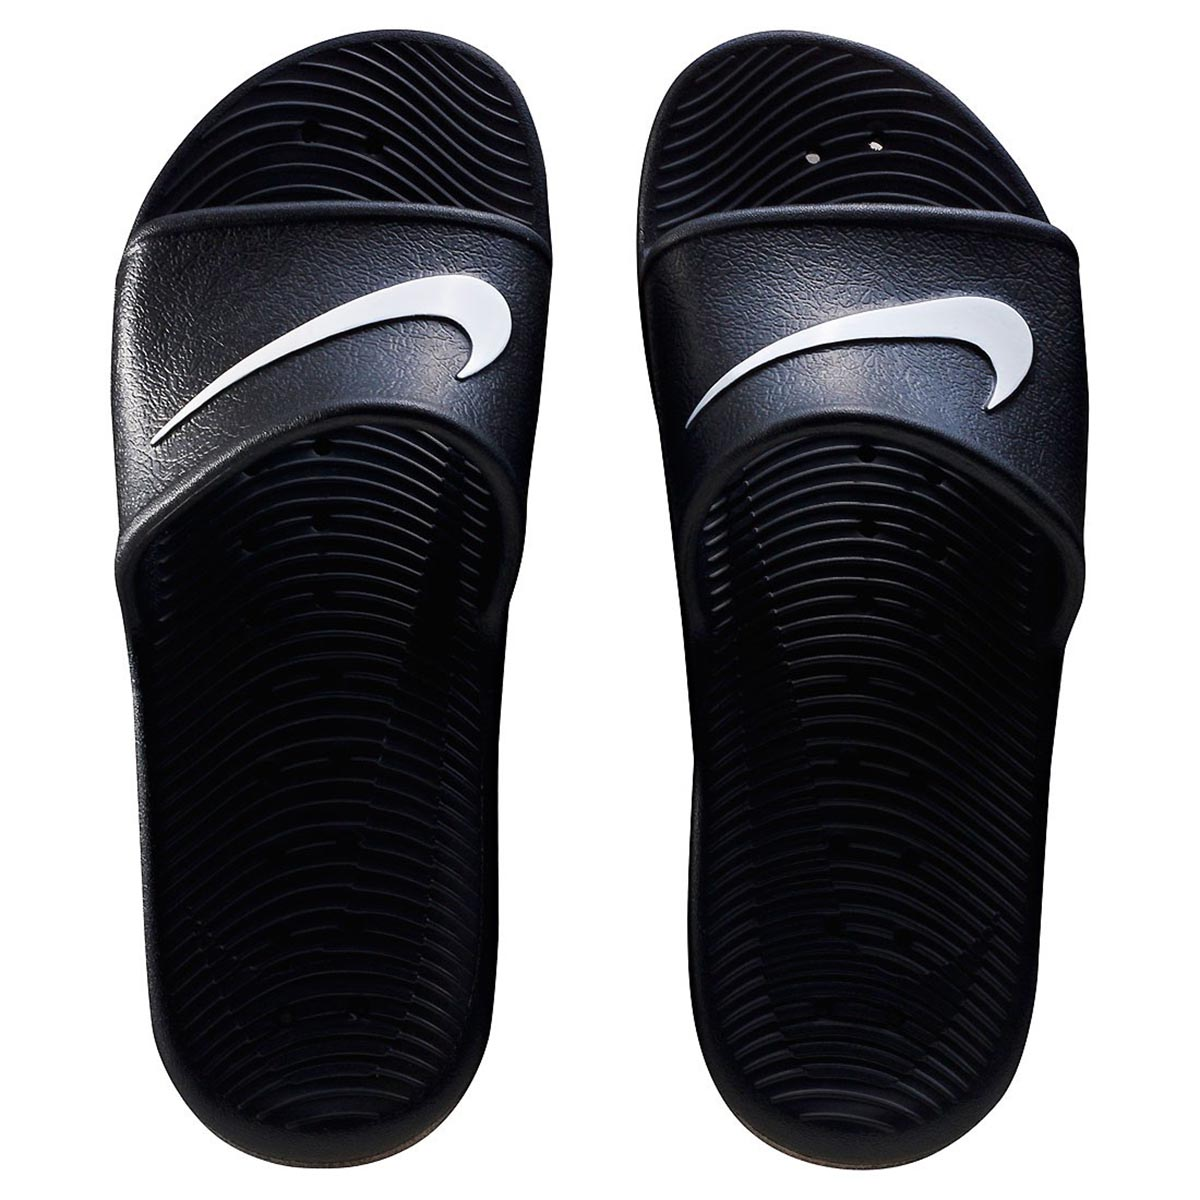 ef539e282 Nike Kawa Shower Flip Flops (Black White) Online at Lowest Price in India